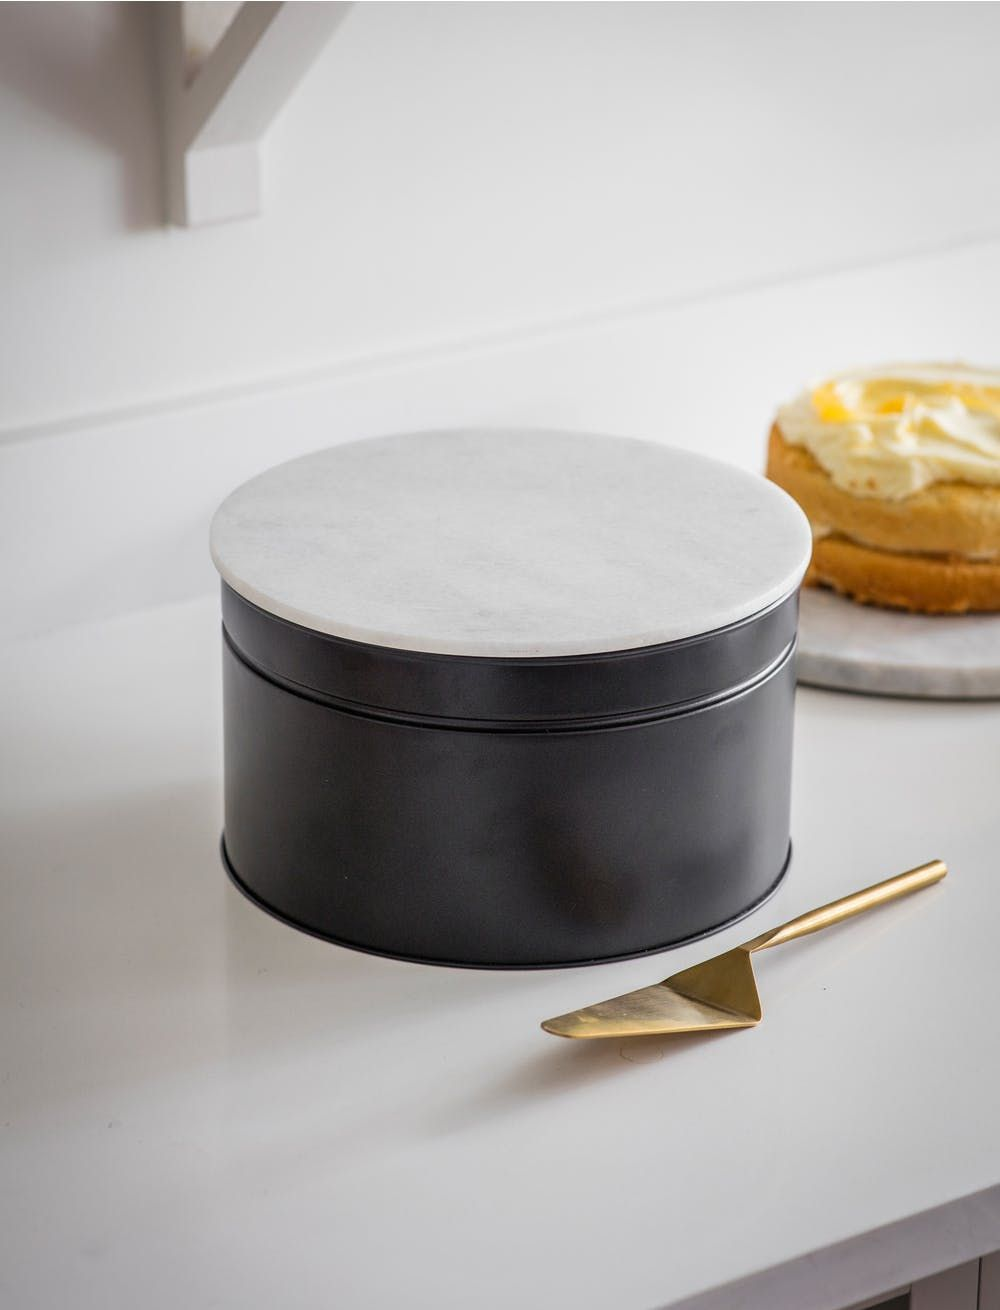 Off Black Circular Metal Brompton 10 Inch Cake Tin With Grey Marble Lid Beside A Brass Cake Slice And Lemon Cake Click To Buy Now Cake Tins Baking Accessories